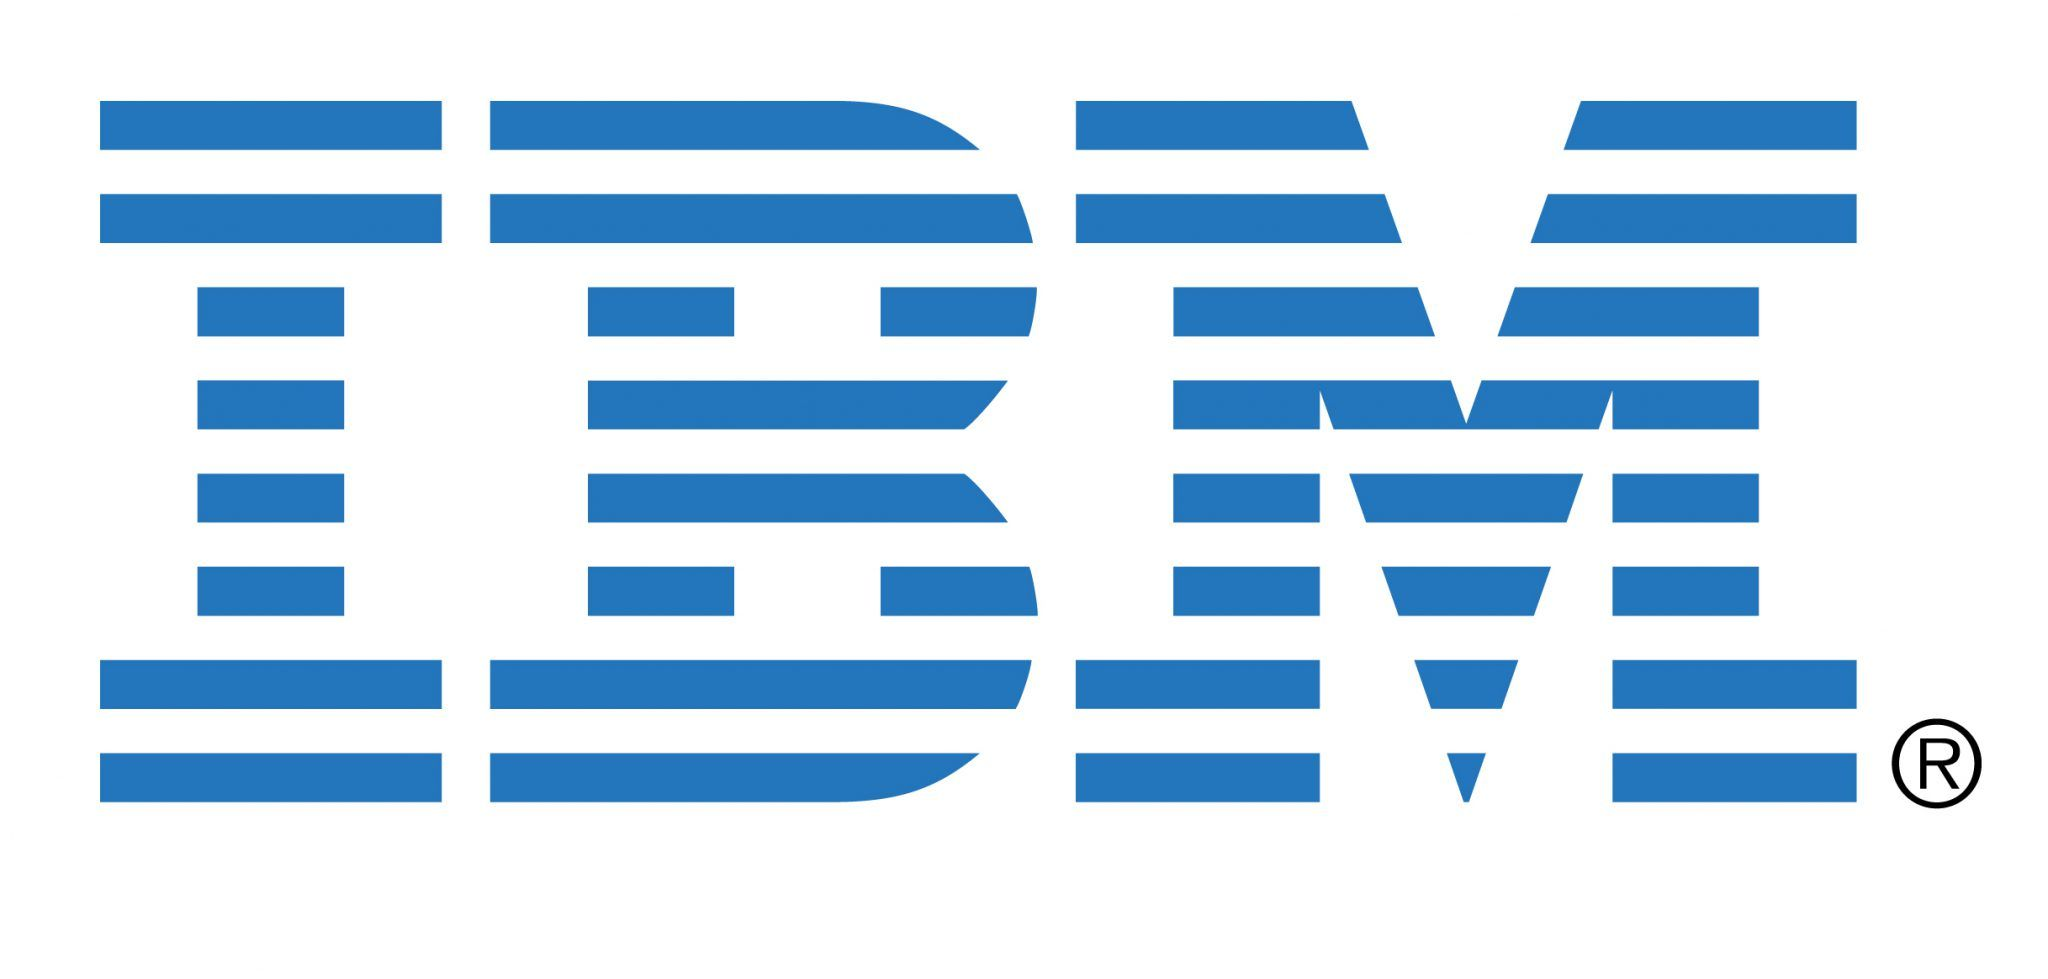 IBM Logo - IBM-logo - Lightstream